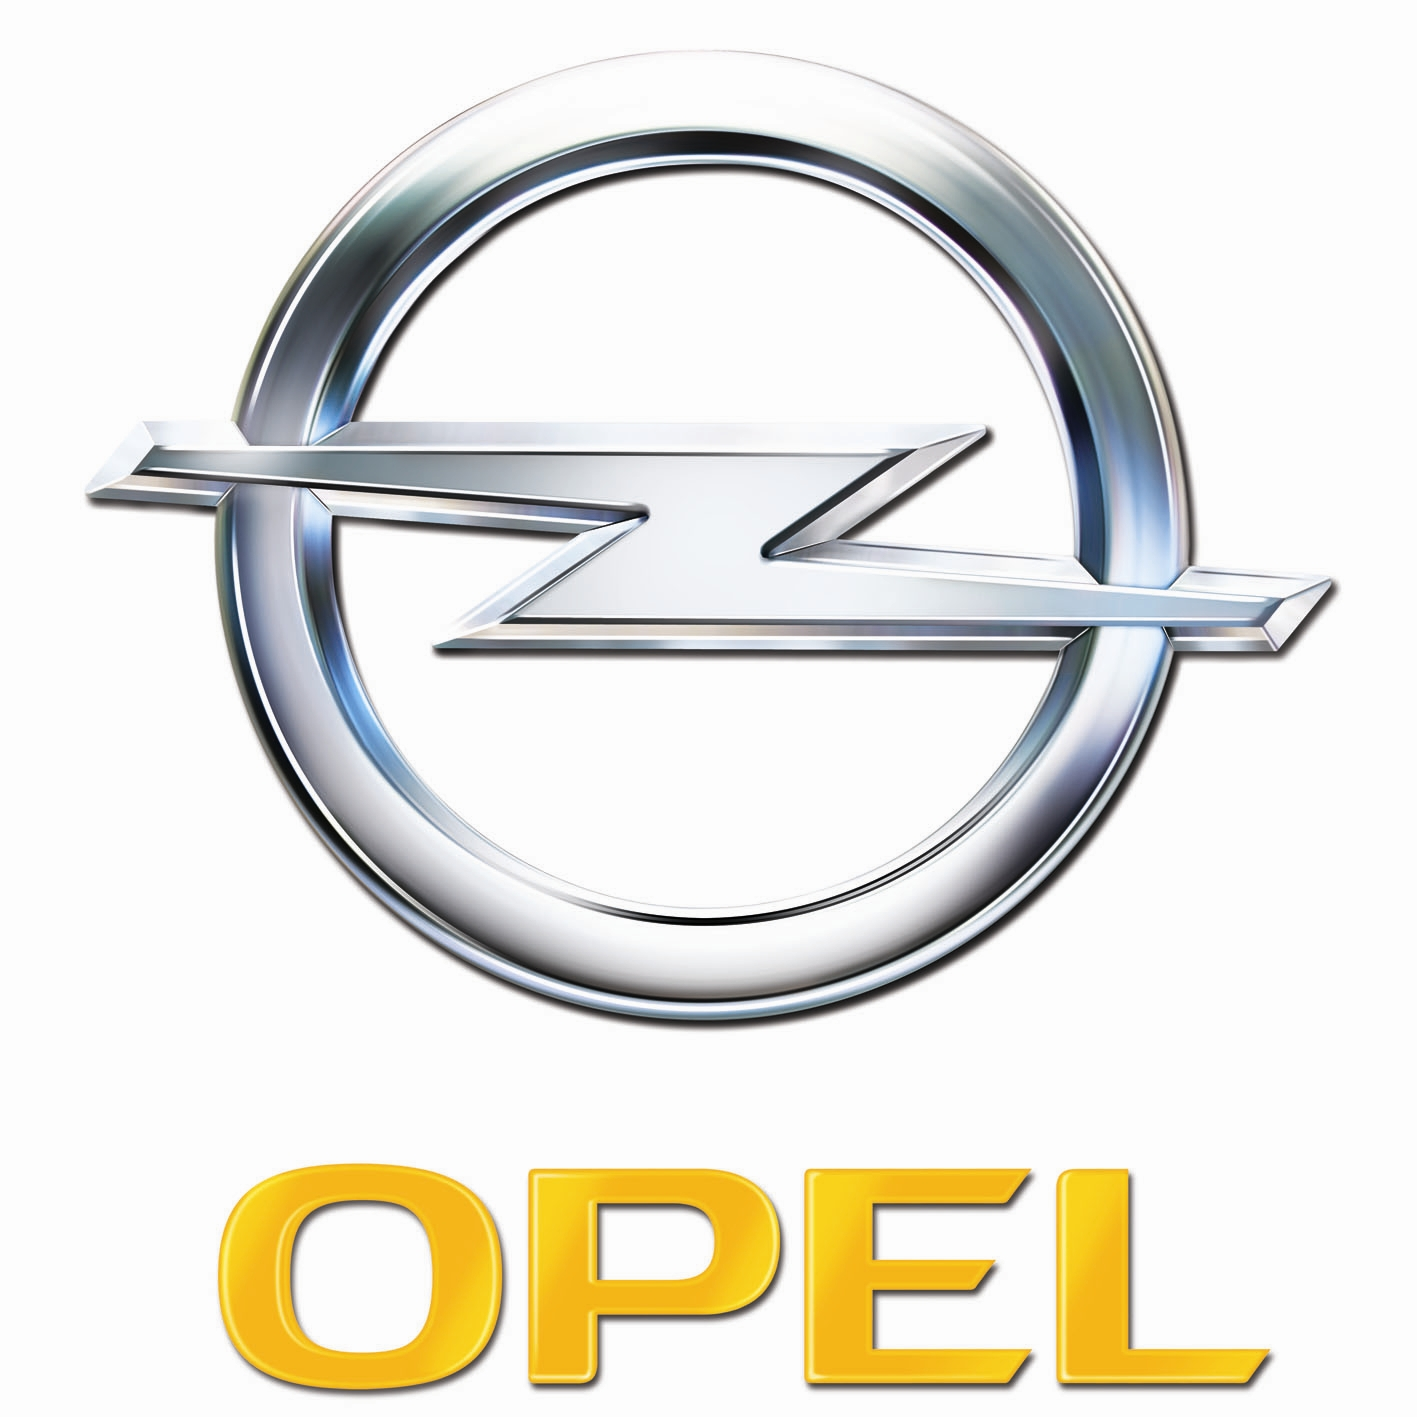 Opel Symbol Wallpaper